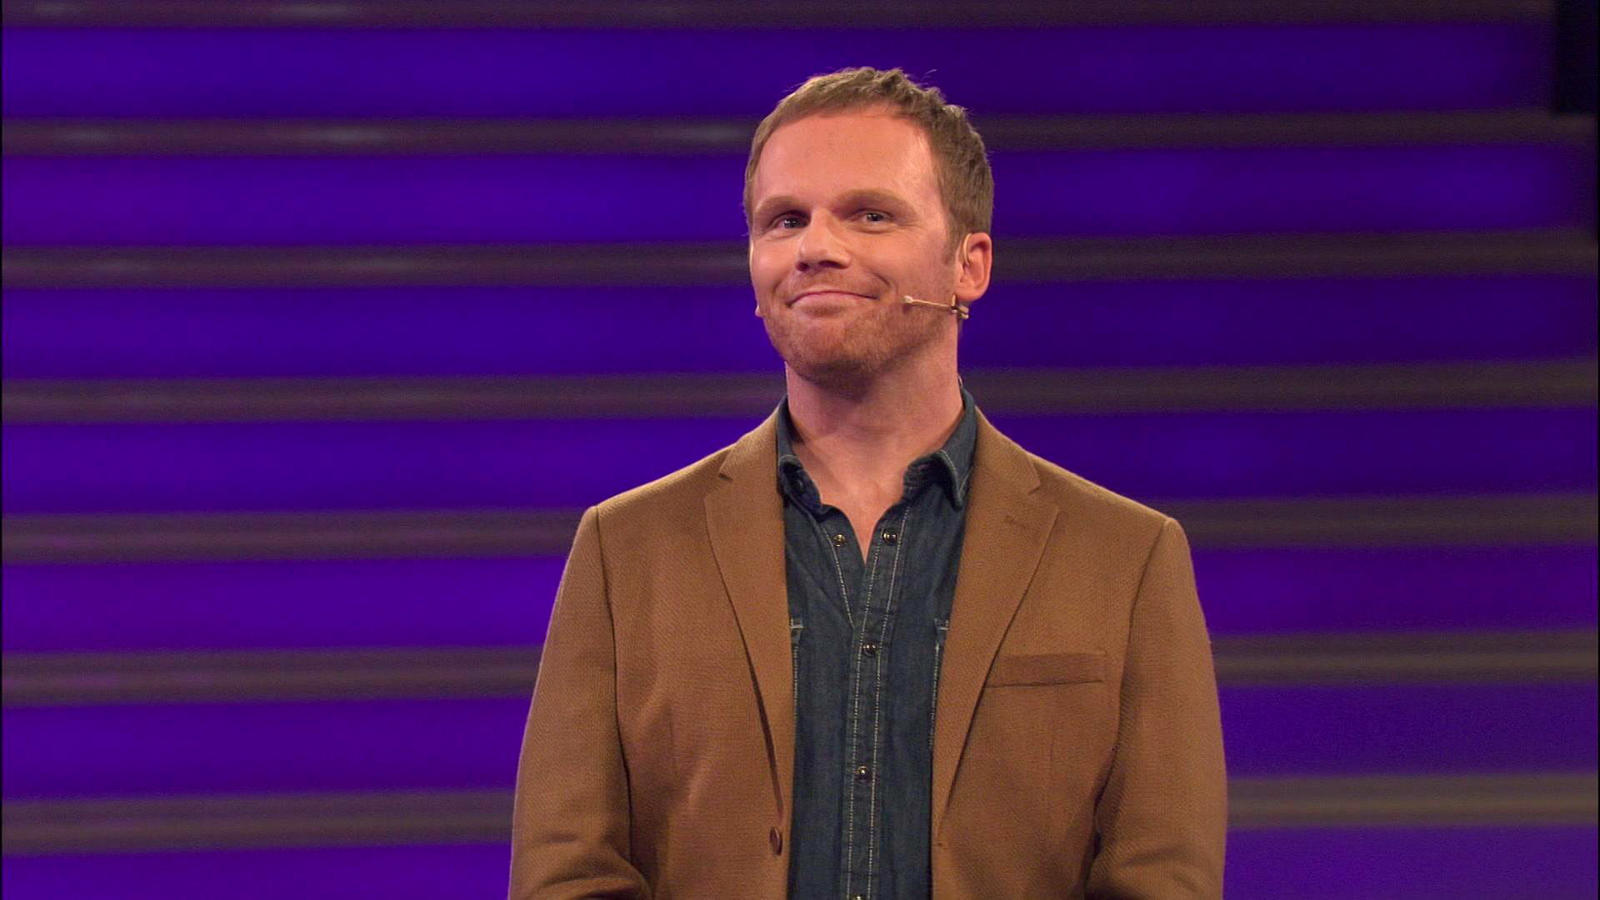 Folge 4 vom 30.06.2020   Take Me Out   TVNOW